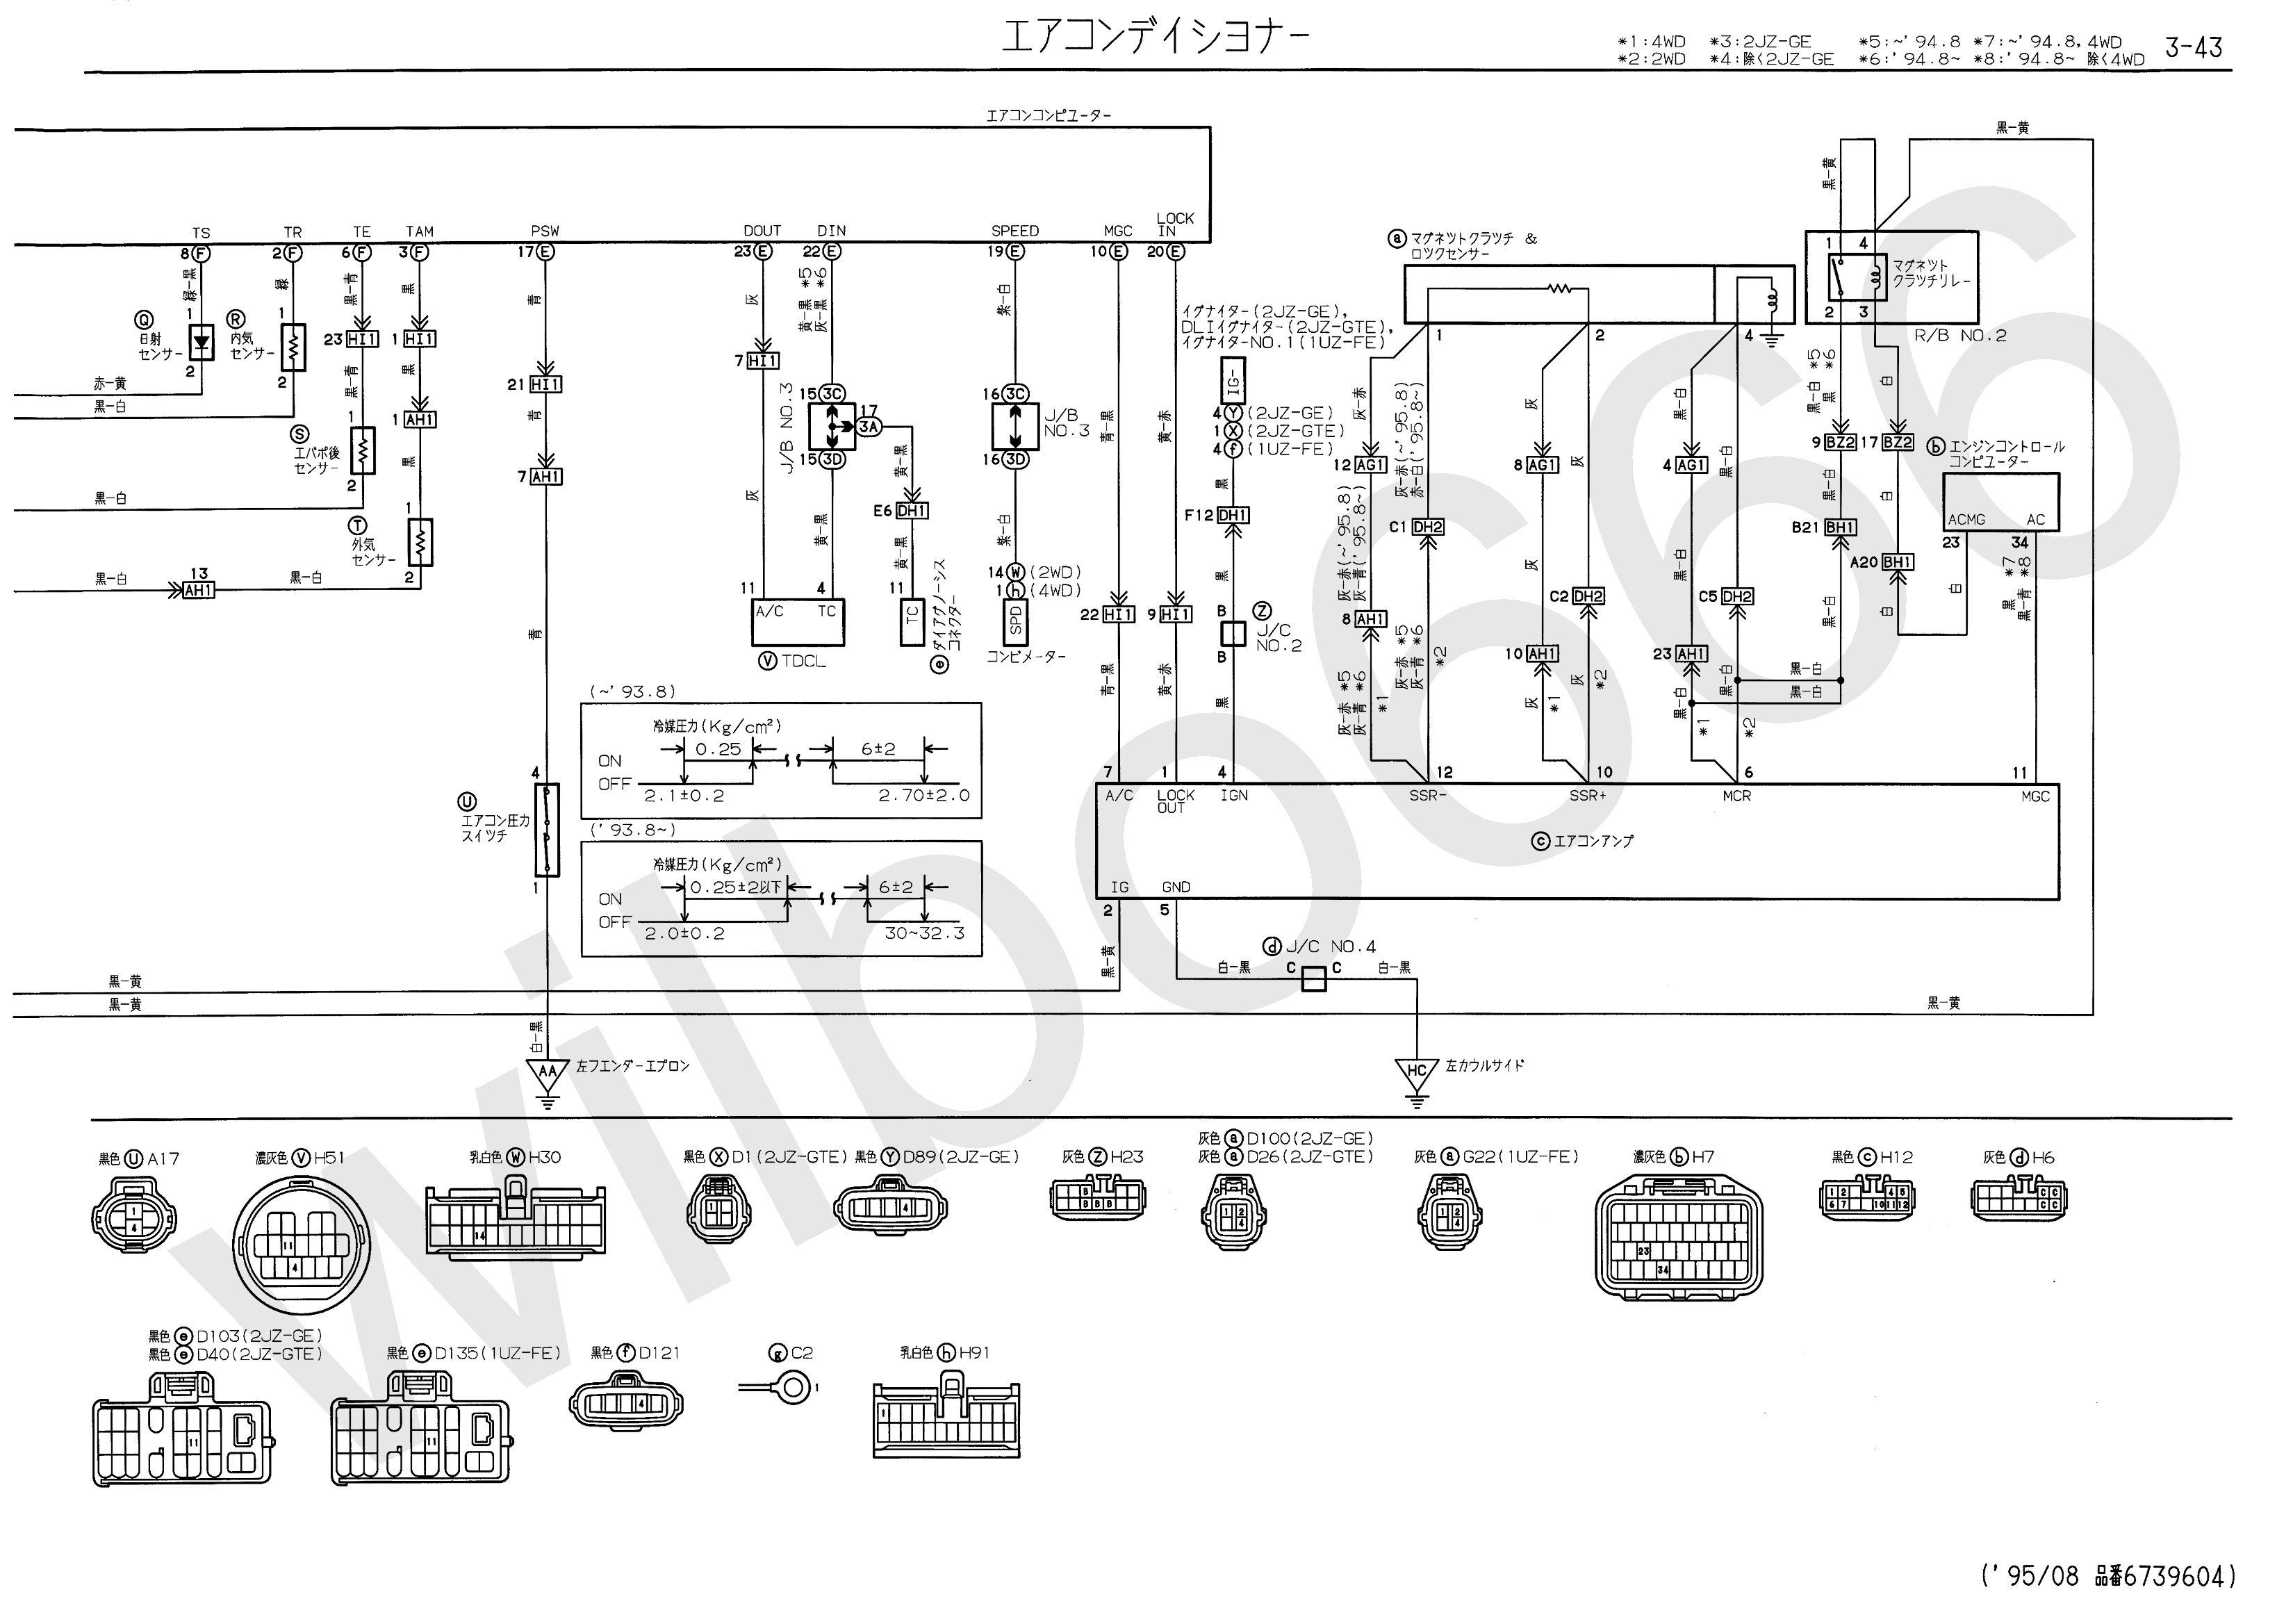 Toyota Supra Ecu Wiring Diagram Schema Sequoia Electrical Download Wilbo666 2jz Gte Jzs147 Aristo Engine Prius